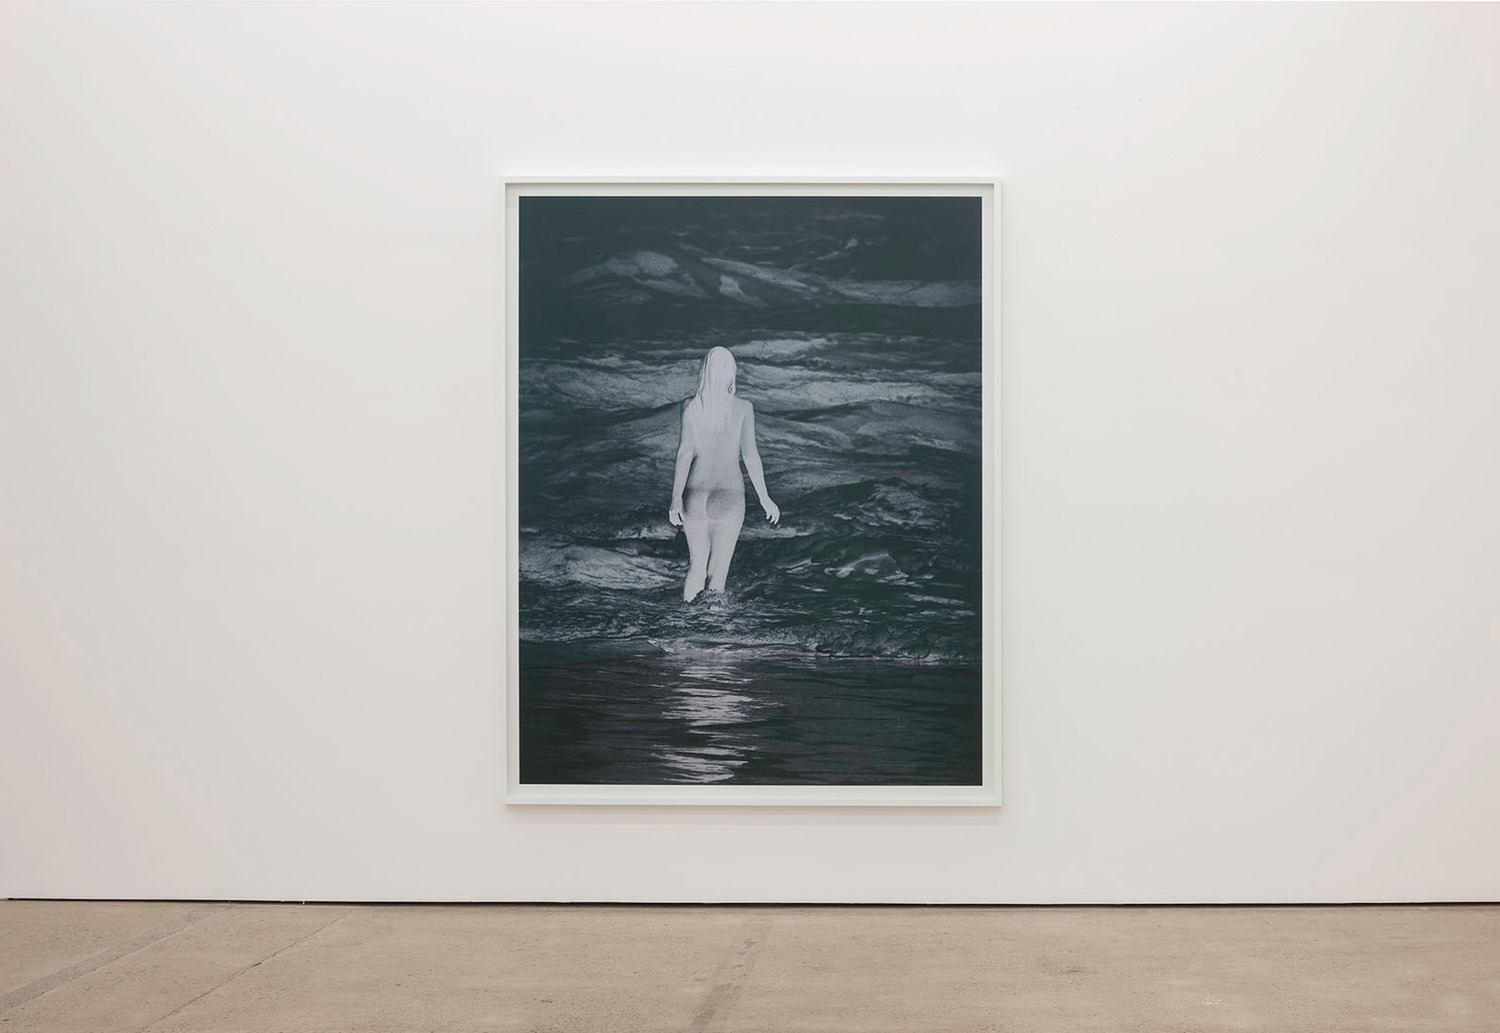 Anne Collier, Negative (California), 2013, C-print, 229.6 x 183.5 x 4.5 cm, Installation view The Modern Institute, Aird's Lane, Glasgow